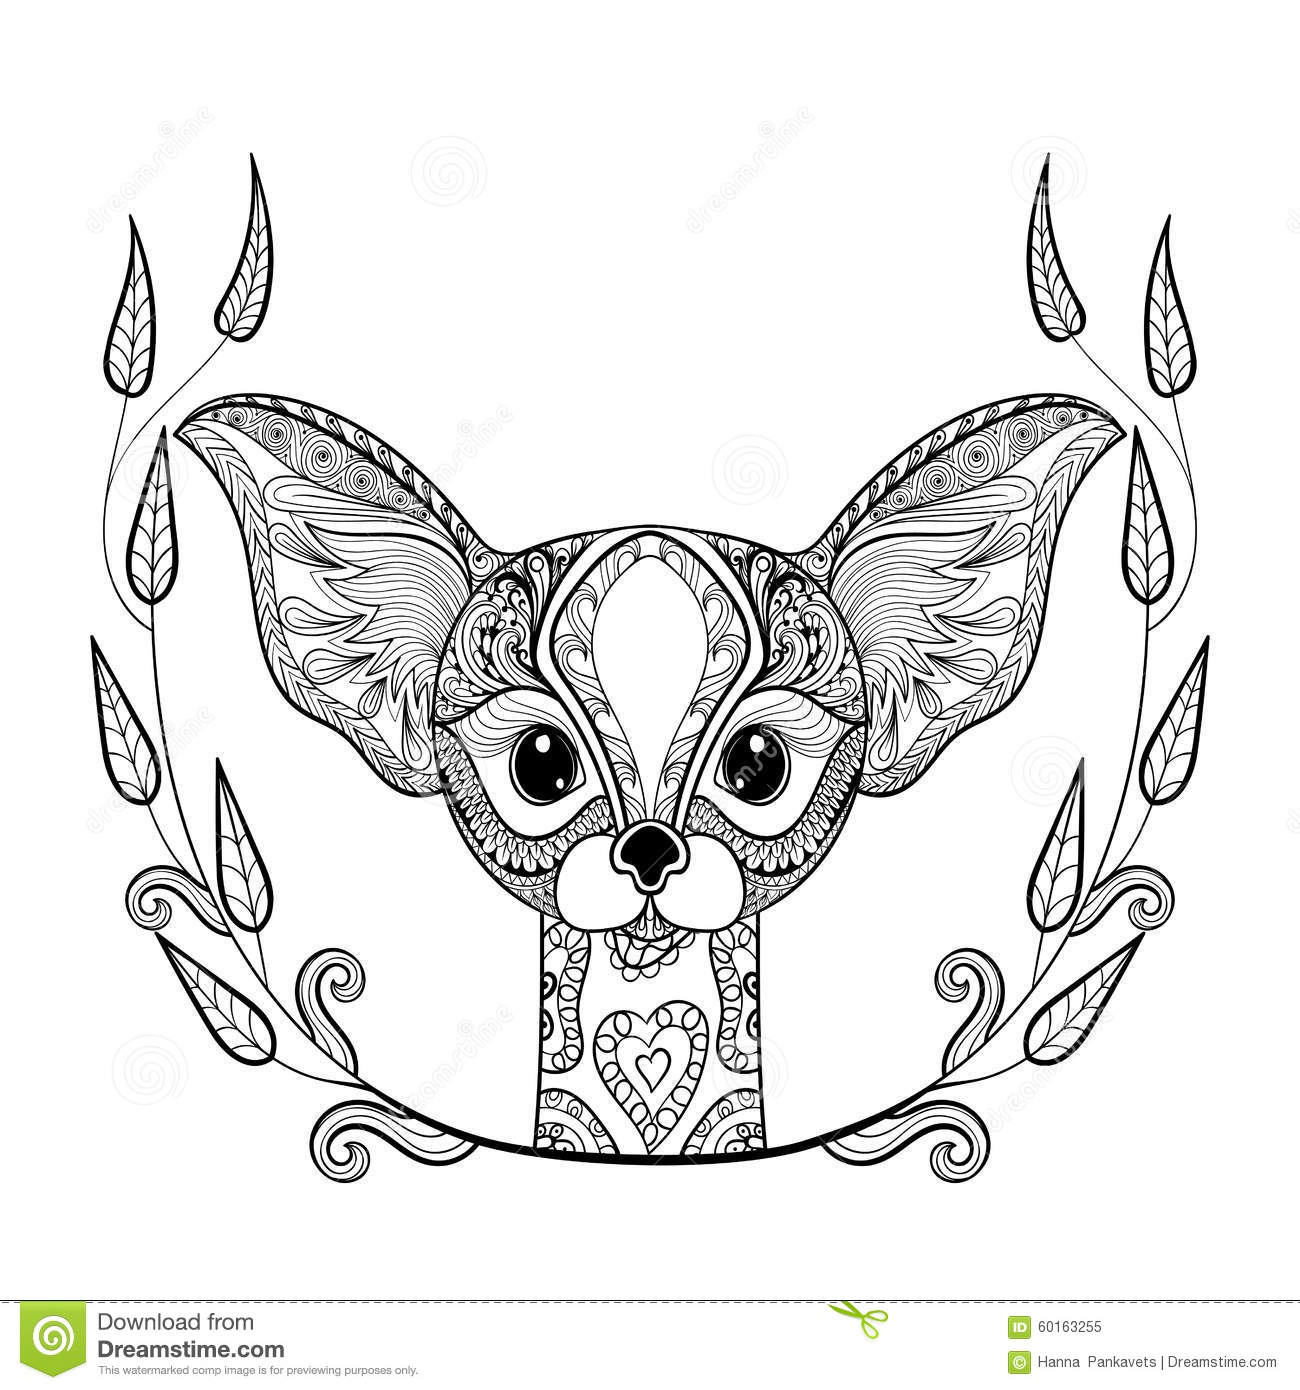 Anti stress coloring therapy - Anti Stress Coloring Book Art Therapy Zentangledesert Fox Head Totem In Frame For Adult Anti